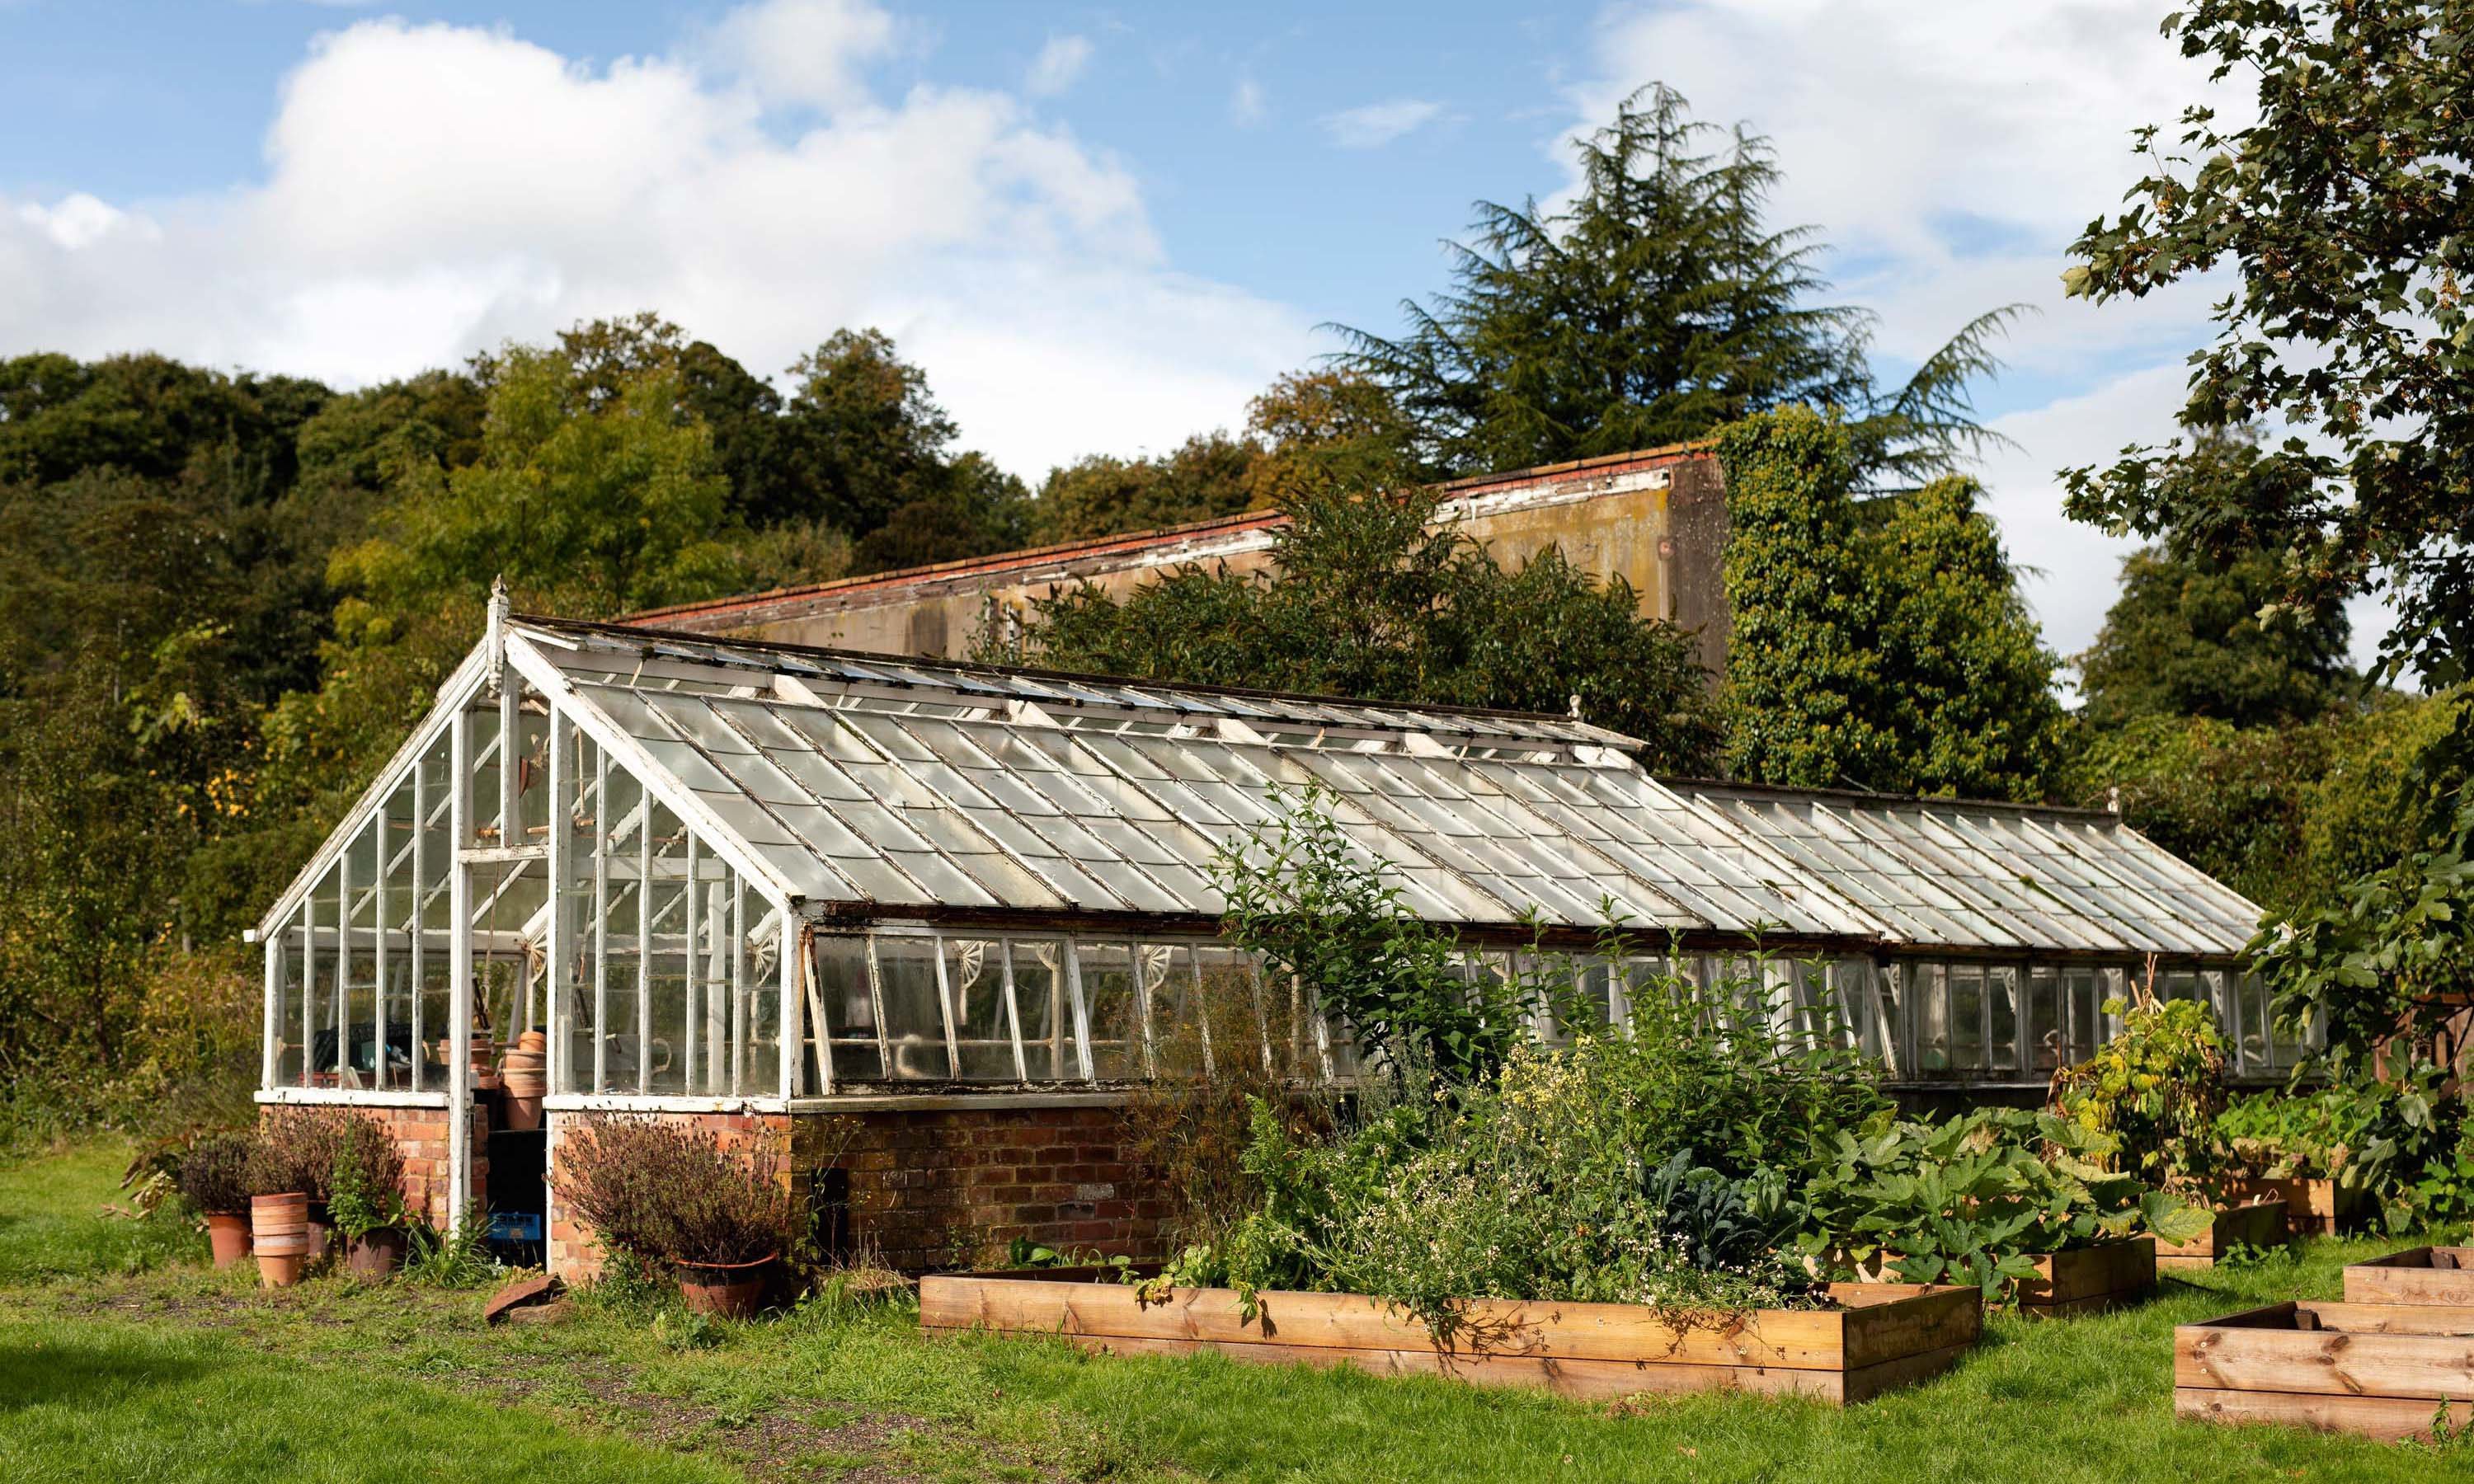 Xanthe Gladstone greenhouse at Hawarden Estate